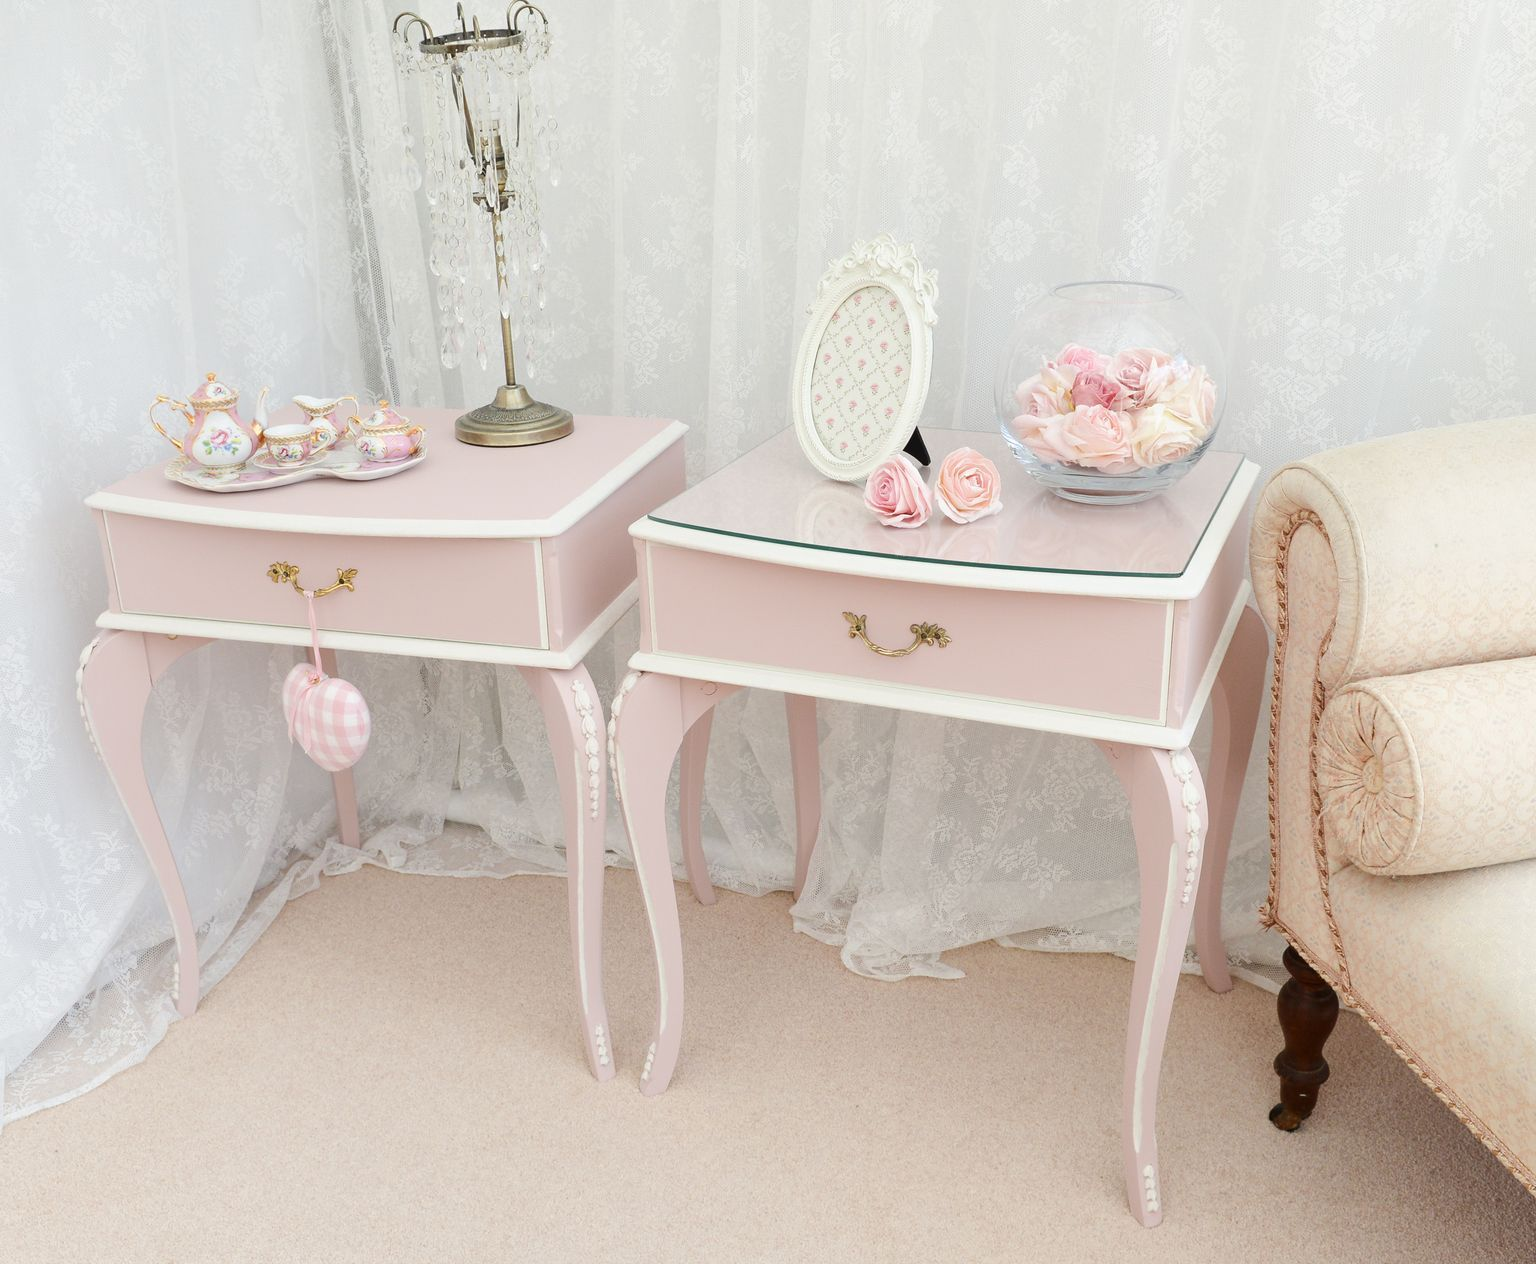 Vintage bedside table ideas - Newly Upcycled Vintage Pink Bedside Tables Shabby Chic